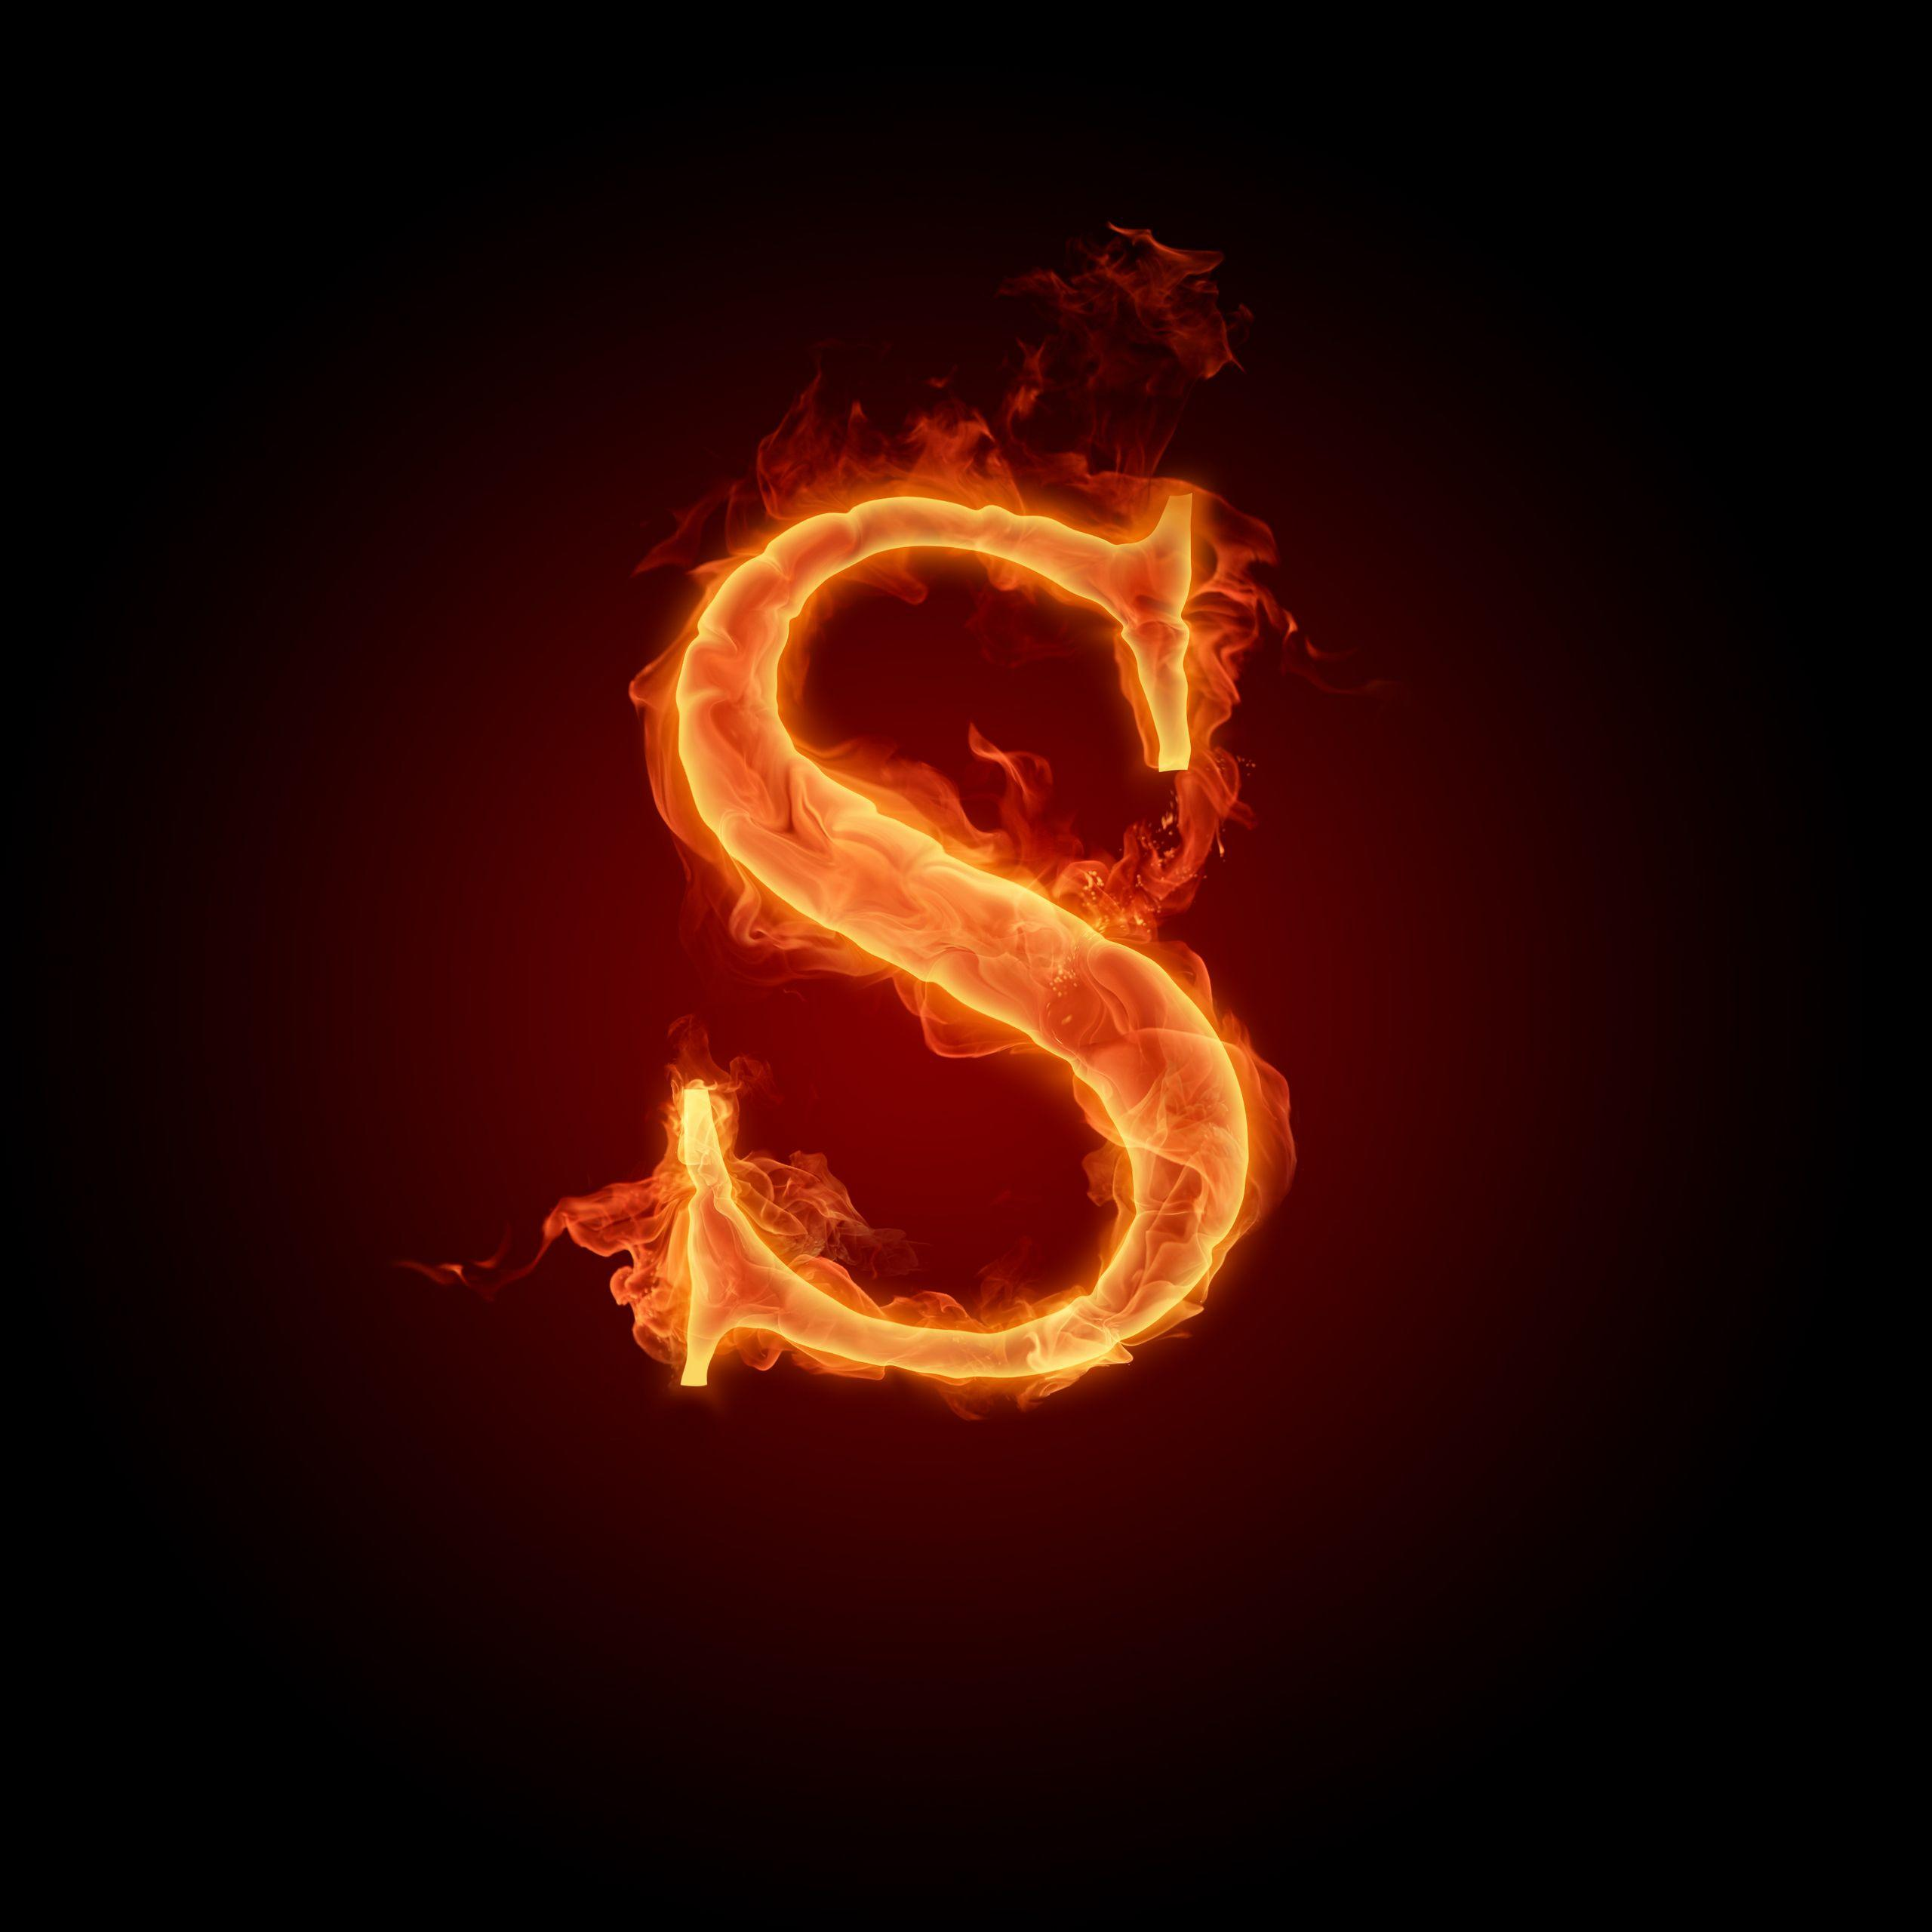 S Letter Logo Wallpapers Hd Wallpaper Cave